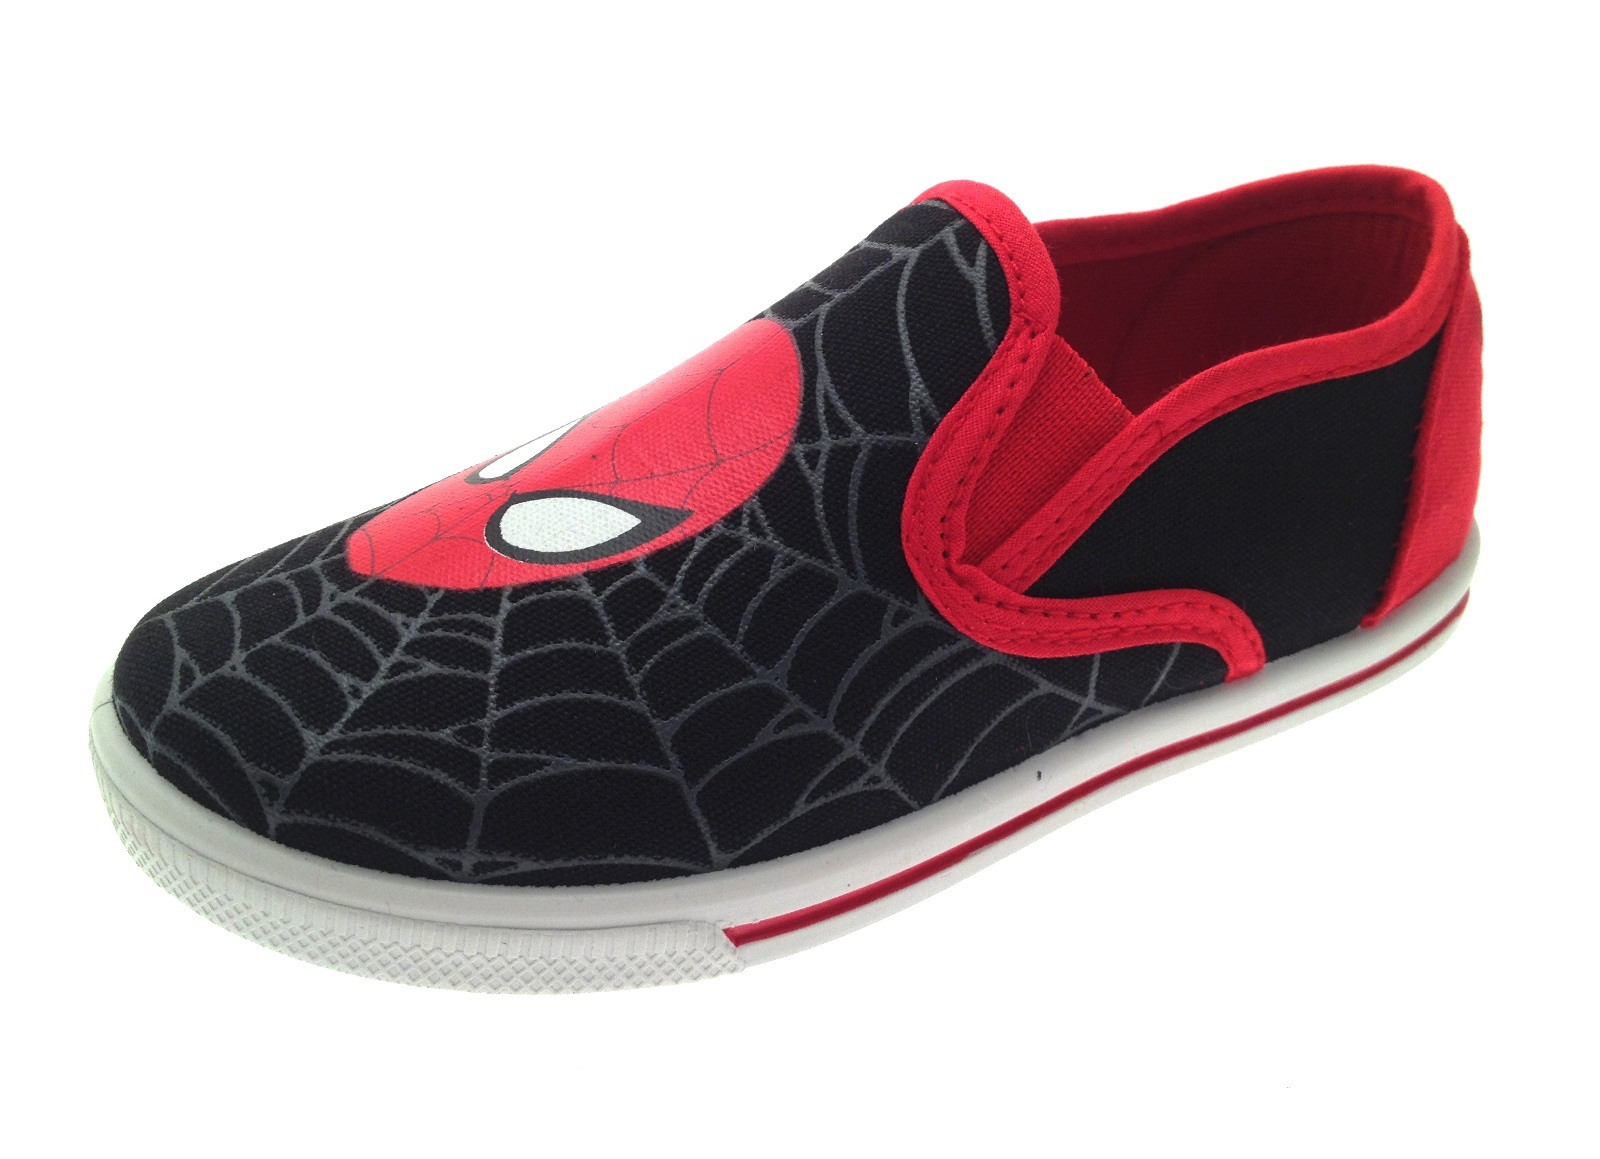 Spiderman Velcro Shoes Mens